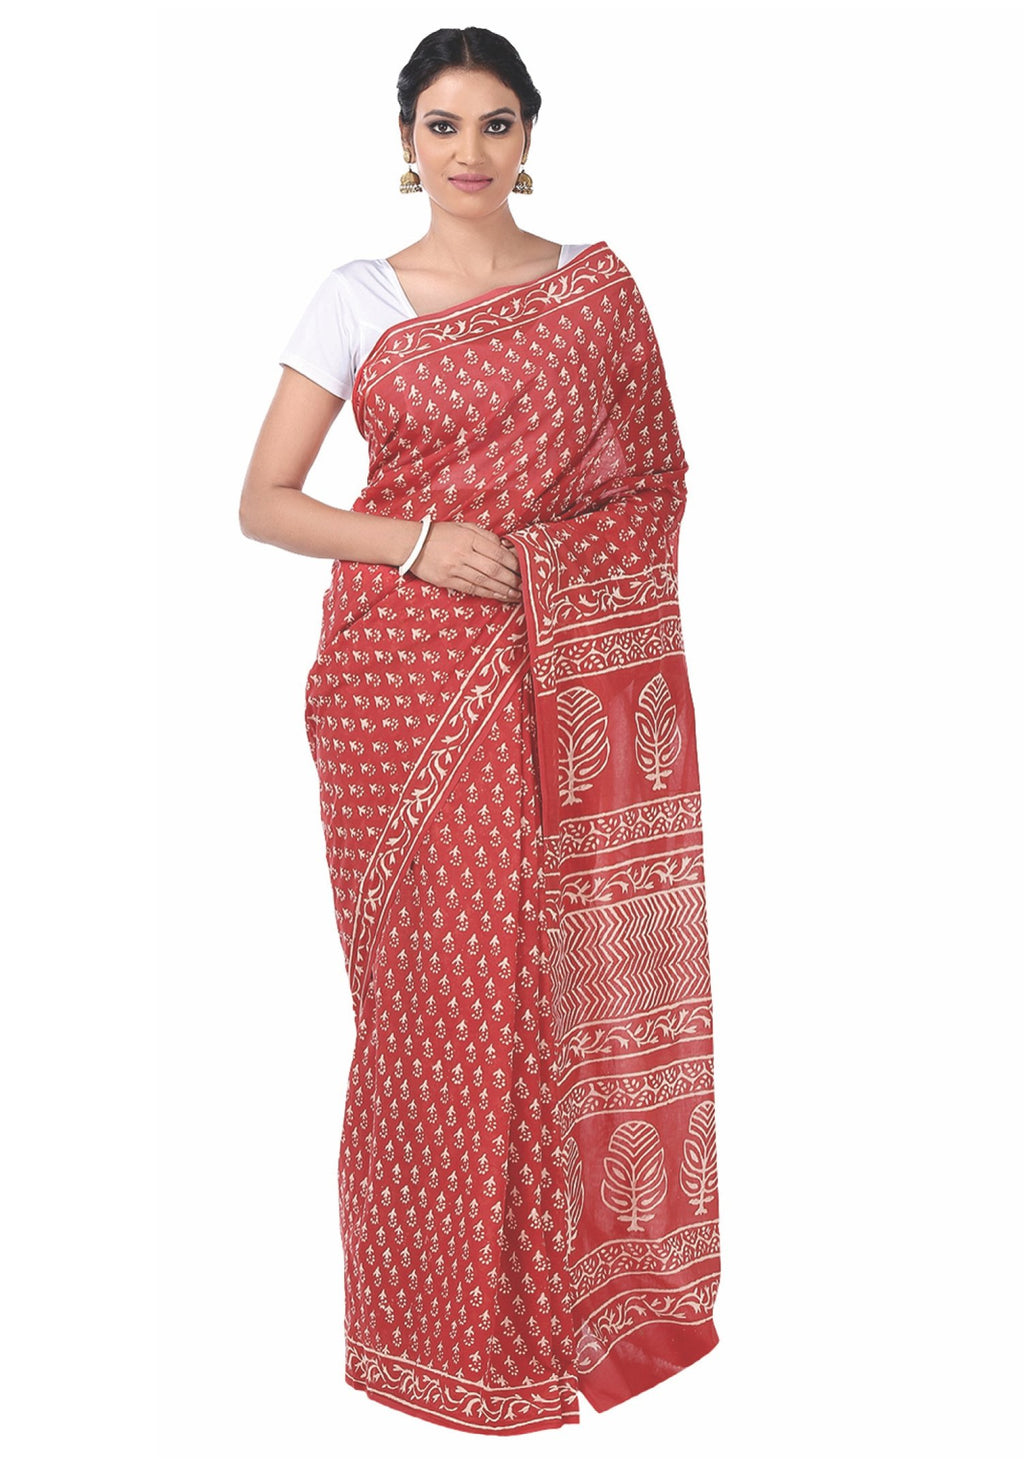 Red Dabu Hand Block Print Handcrafted Cotton Saree-Saree-Kalakari India-BAPASA0044-Cotton, Dabu, Geographical Indication, Hand Blocks, Hand Crafted, Heritage Prints, Sarees, Sustainable Fabrics-[Linen,Ethnic,wear,Fashionista,Handloom,Handicraft,Indigo,blockprint,block,print,Cotton,Chanderi,Blue, latest,classy,party,bollywood,trendy,summer,style,traditional,formal,elegant,unique,style,hand,block,print, dabu,booti,gift,present,glamorous,affordable,collectible,Sari,Saree,printed, holi, Diwali, birt